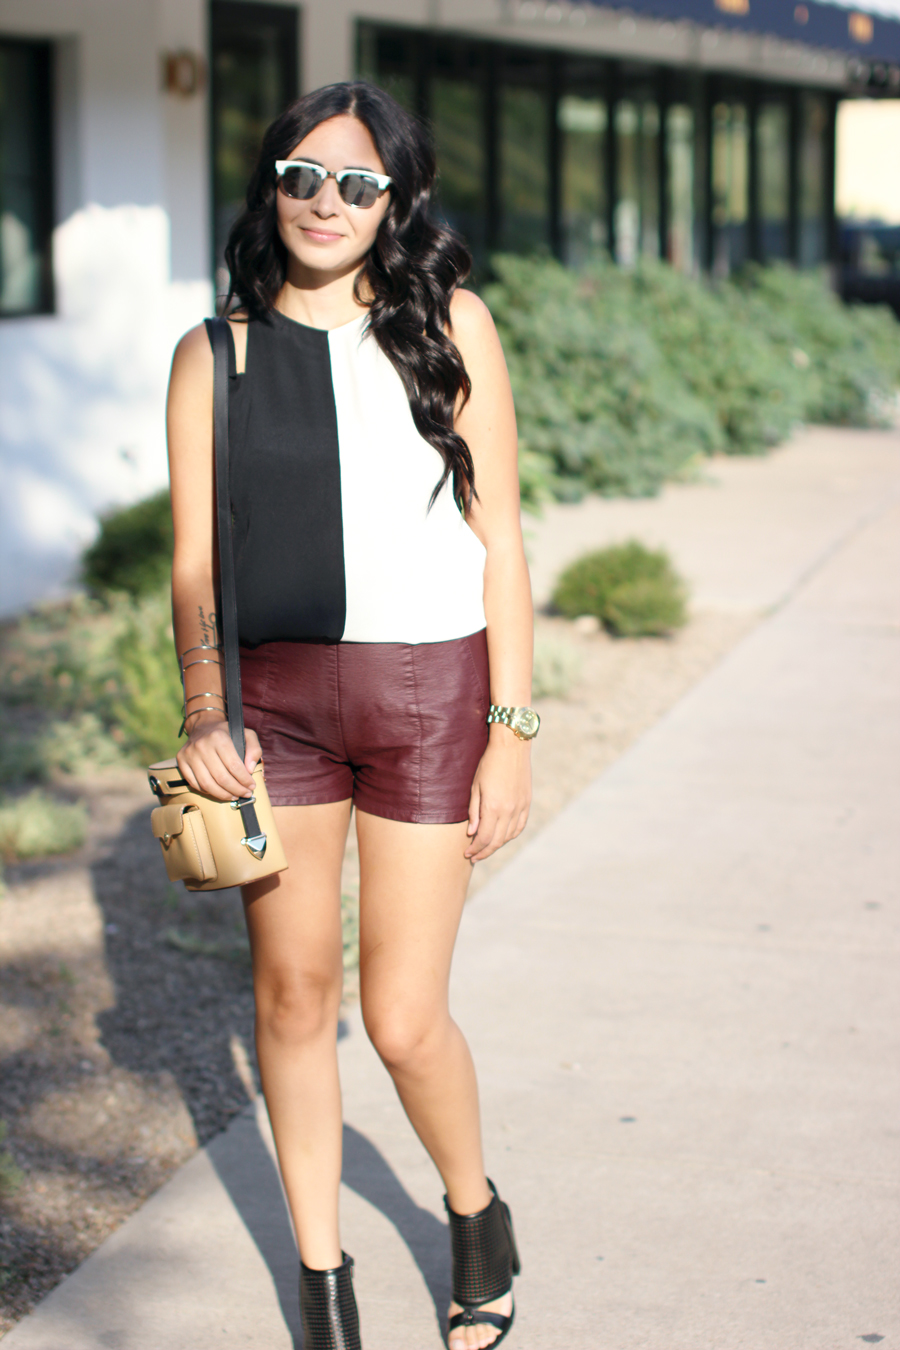 FIXIN-TO-THRILL-COLOR-BLOCK-LEATHER-SHORTS-CURLING-WAND-BLACK-WHITE-FALL-ATX-AUSTIN-STYLE-BLOG-SHIRTS-COLORS-TRENDS-FW15-TRENDY-CHIC-GLAM-FASHION-TEXAS-3